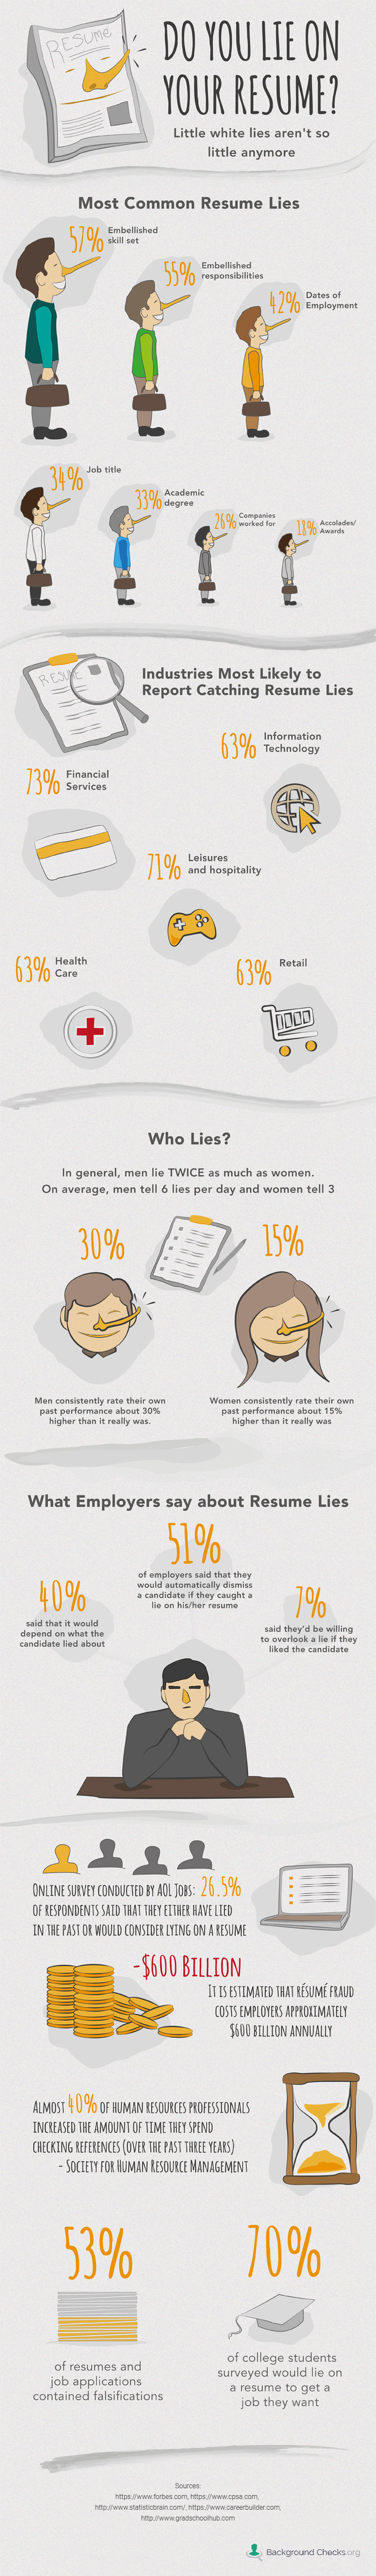 The Lies we tell on resumes